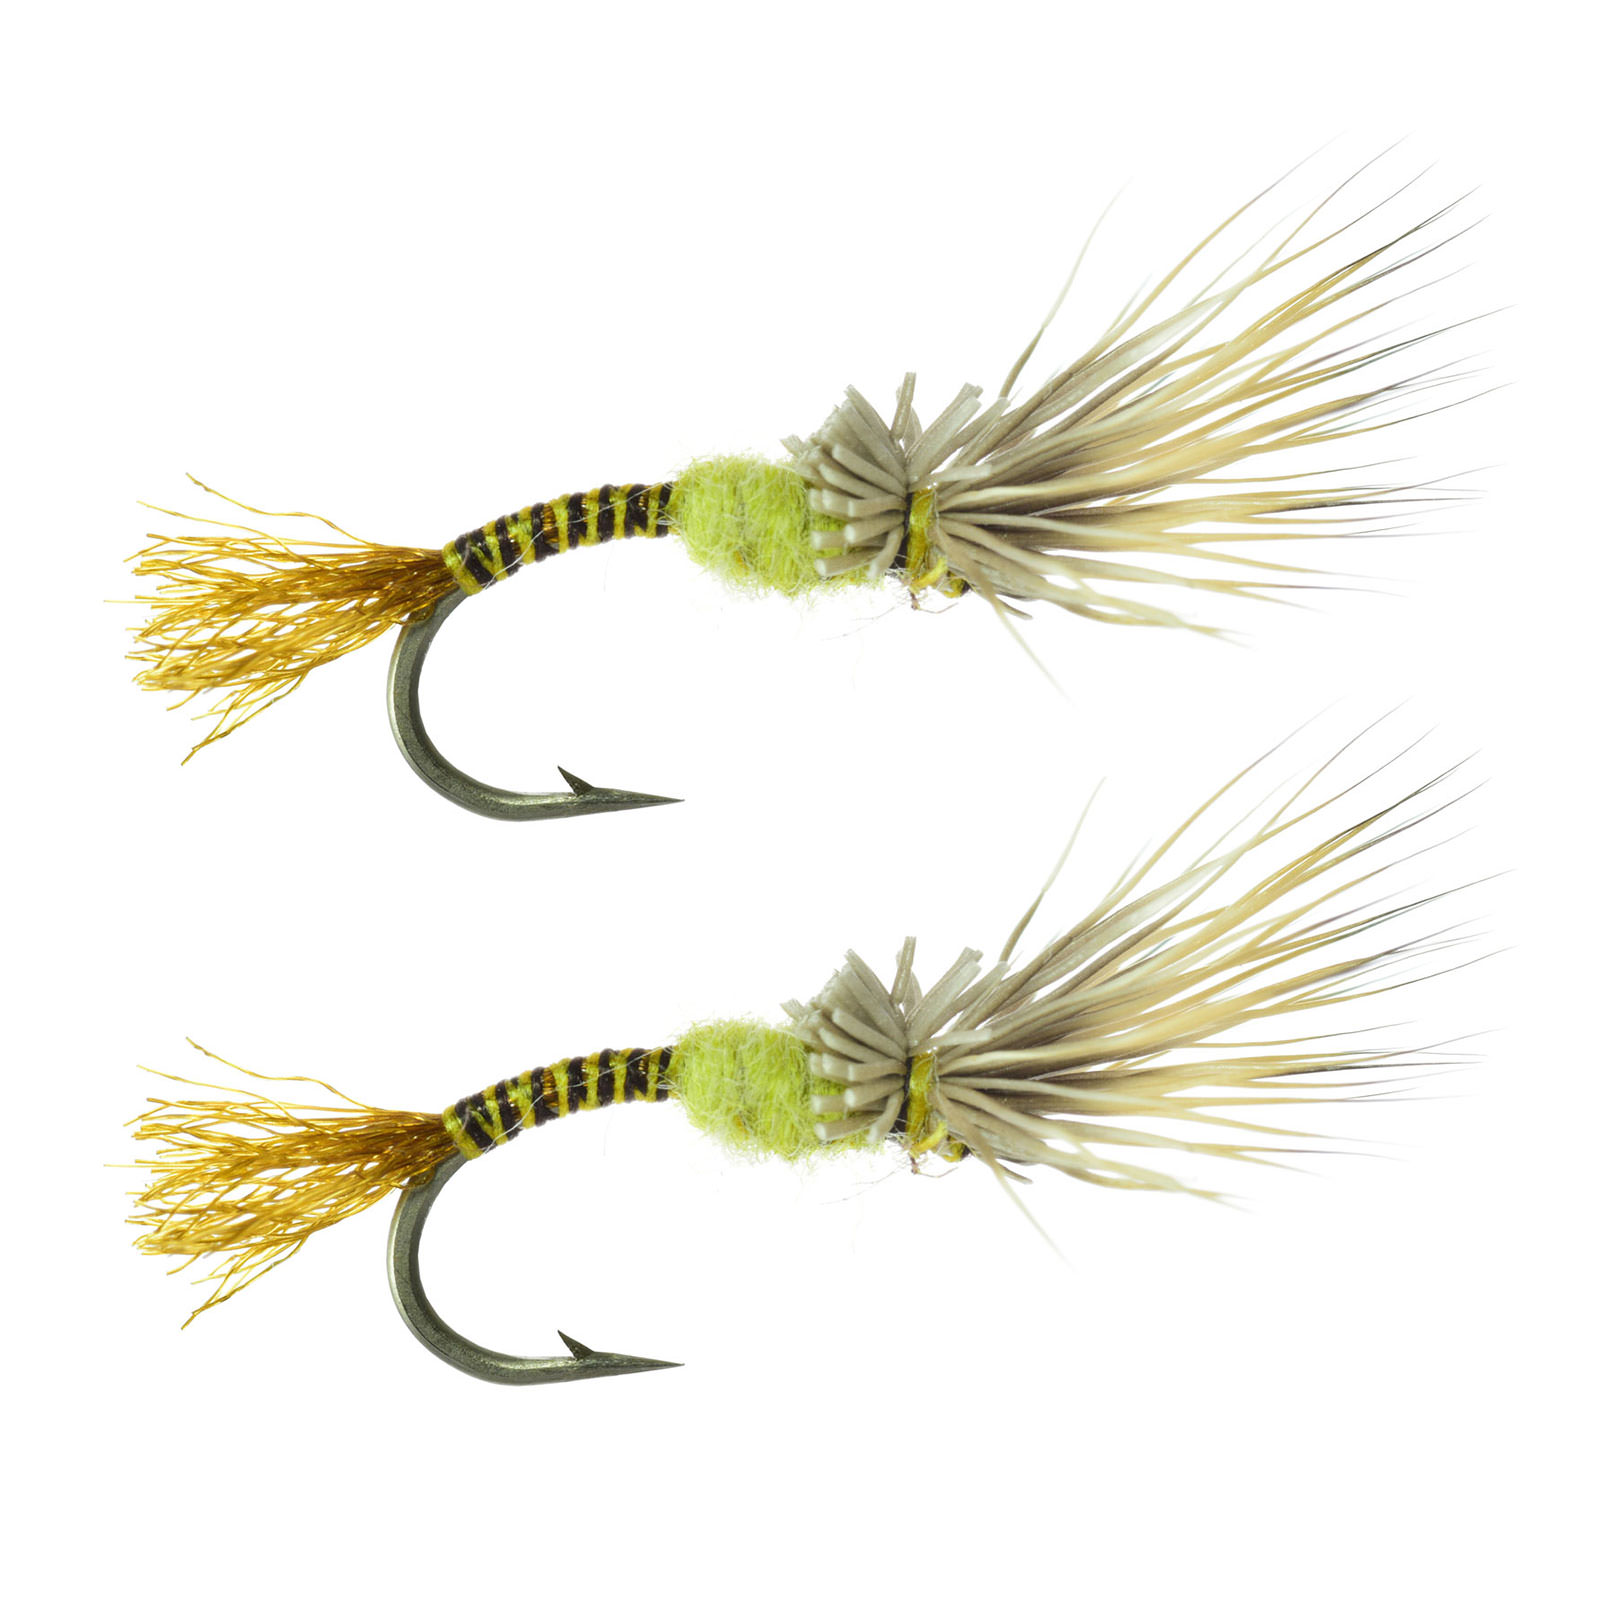 Umpqua tenkara sparkle dun pmd simple fly fishing pattern for Simple fly fishing